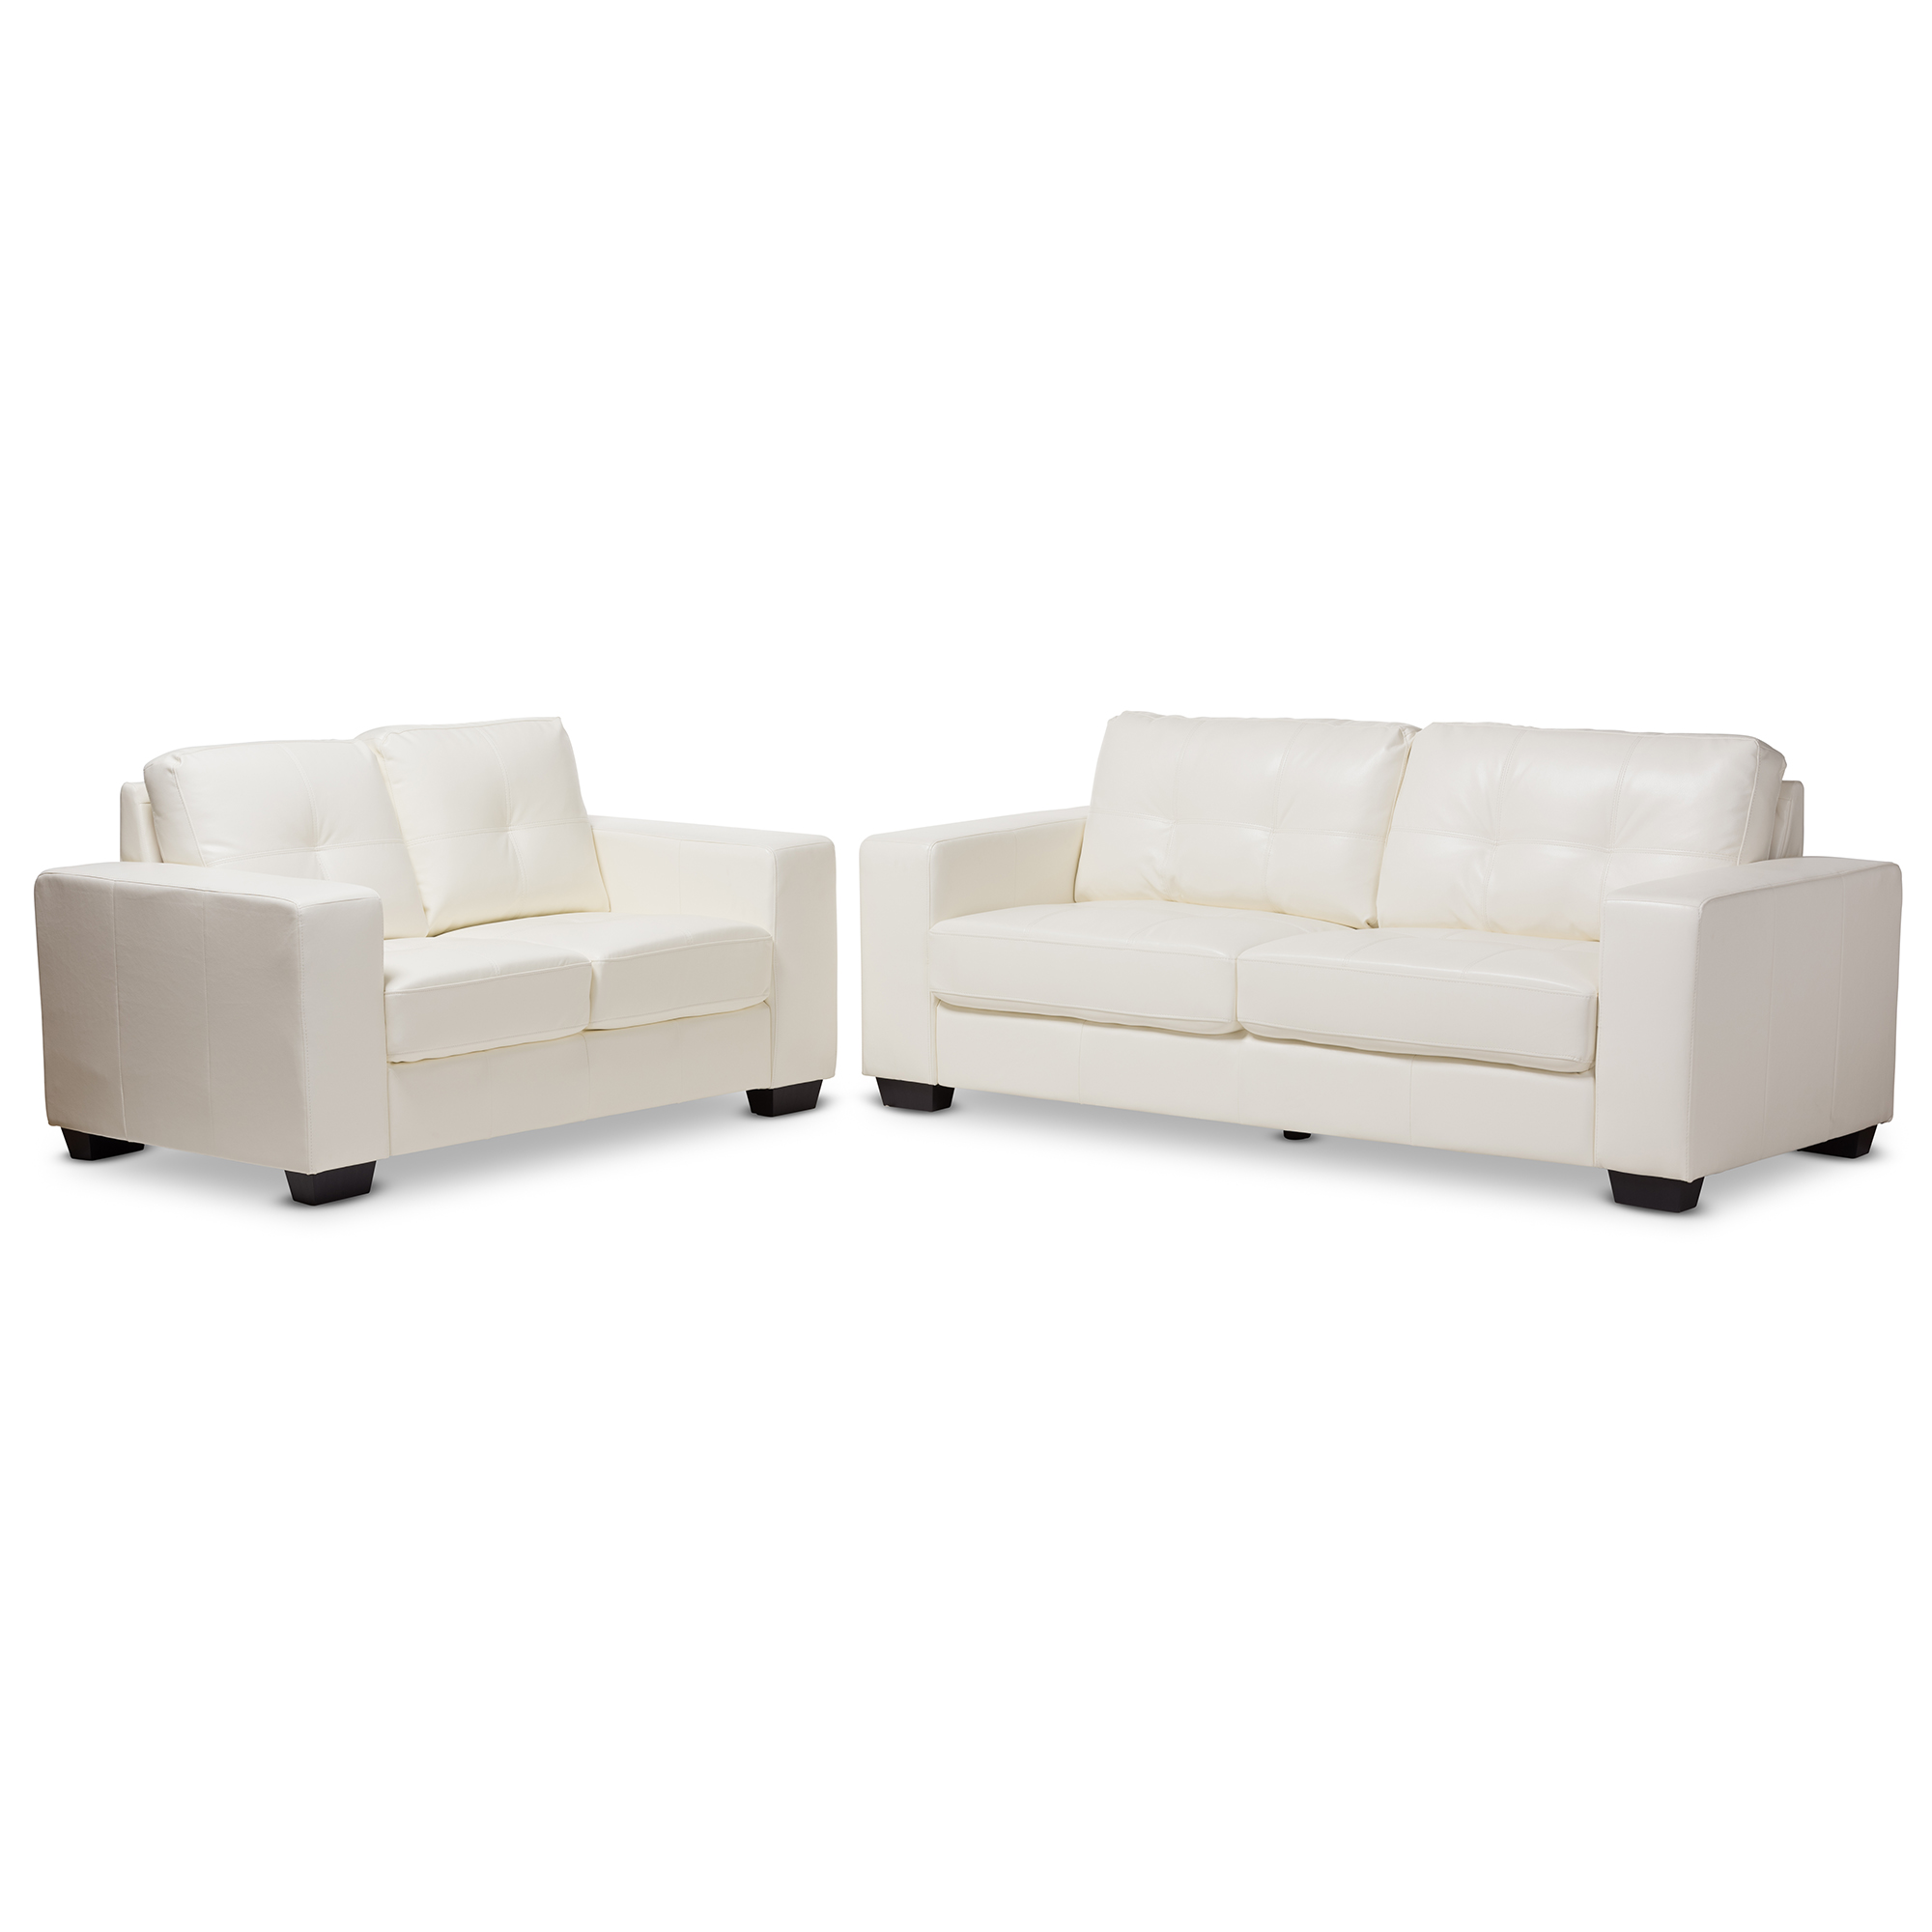 Studio living room furniture Simple Baxton Studio Adalynn Modern And Contemporary White Faux Leather Upholstered 2piece Livingroom Set Baxton Youtube Living Room Furniture Affordable Modern Design Baxton Studio